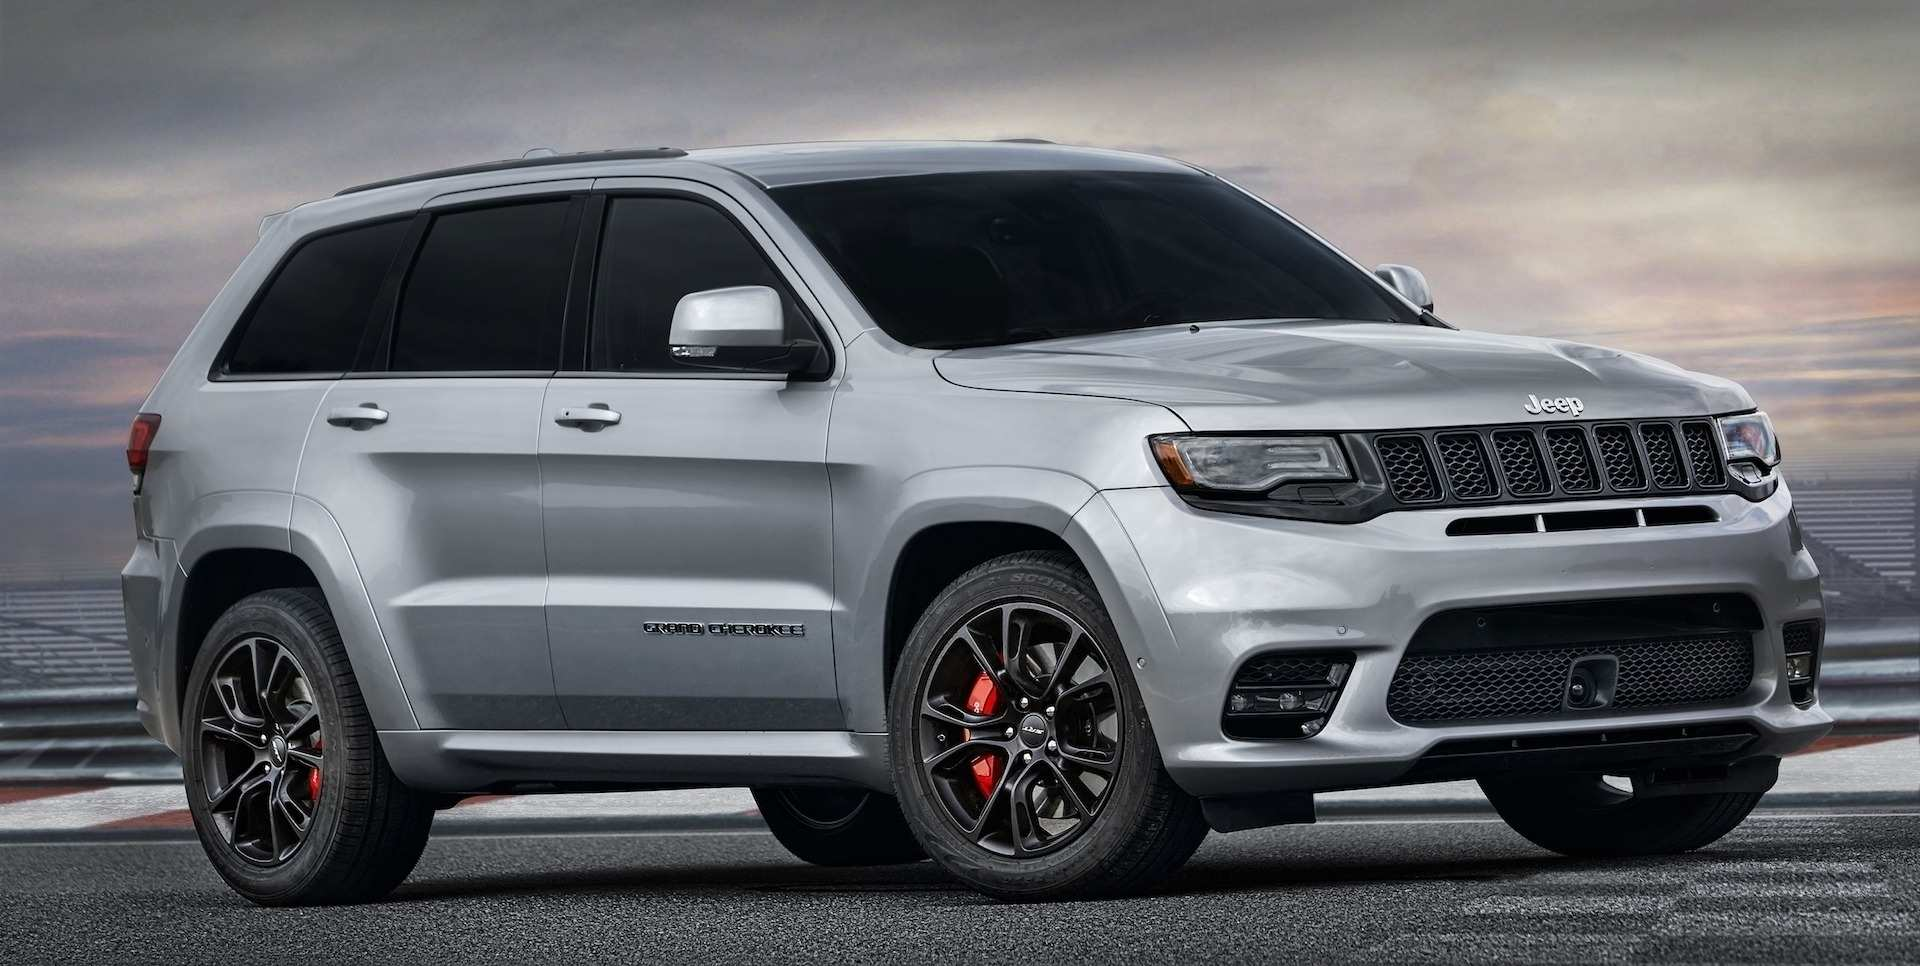 76 All New 2019 Jeep Grand Cherokee Diesel Photos